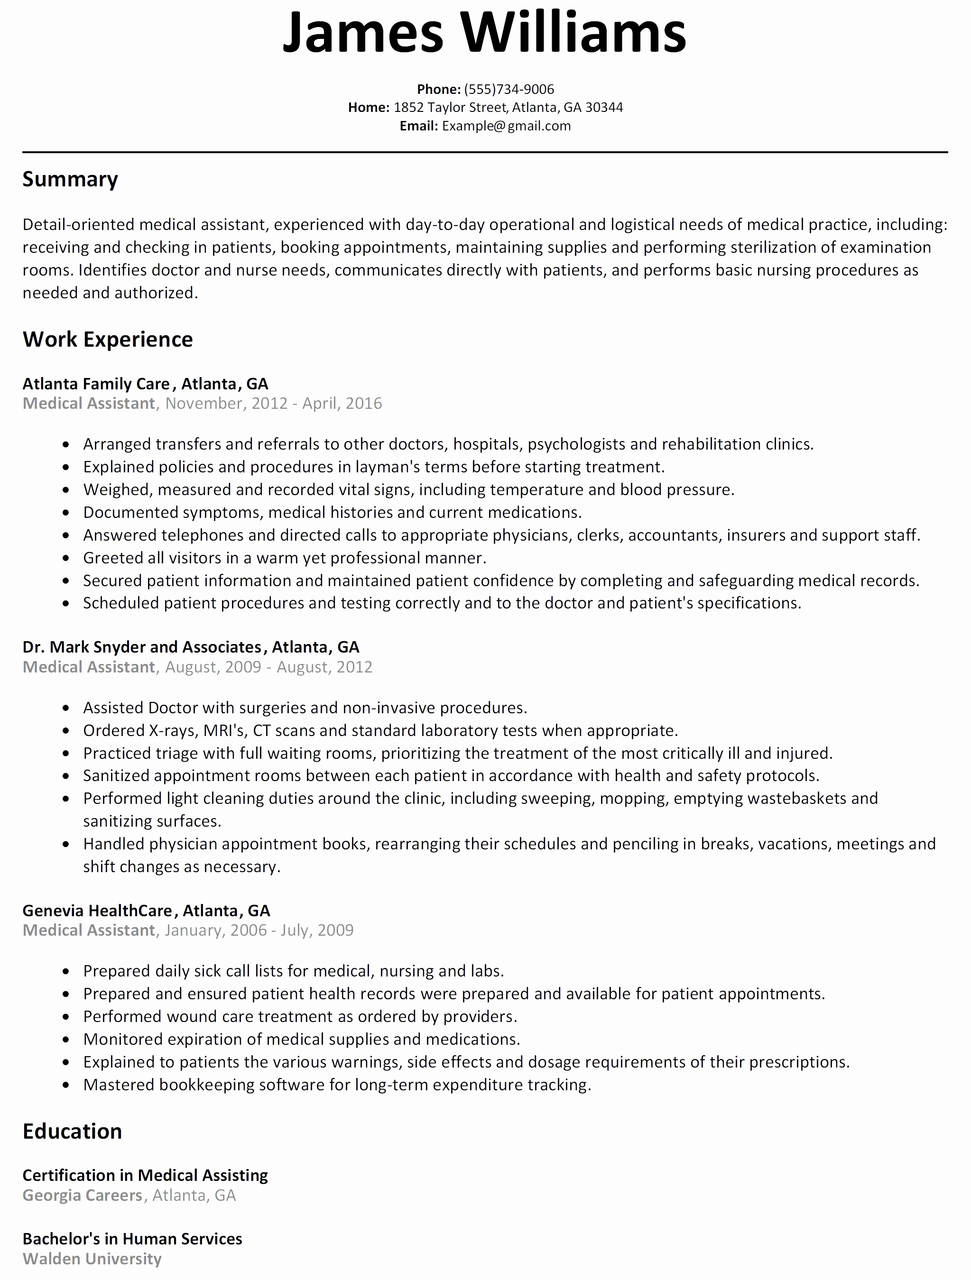 Resume Template Libreoffice - Resume Template Word Download New Free Resume Templates Downloads